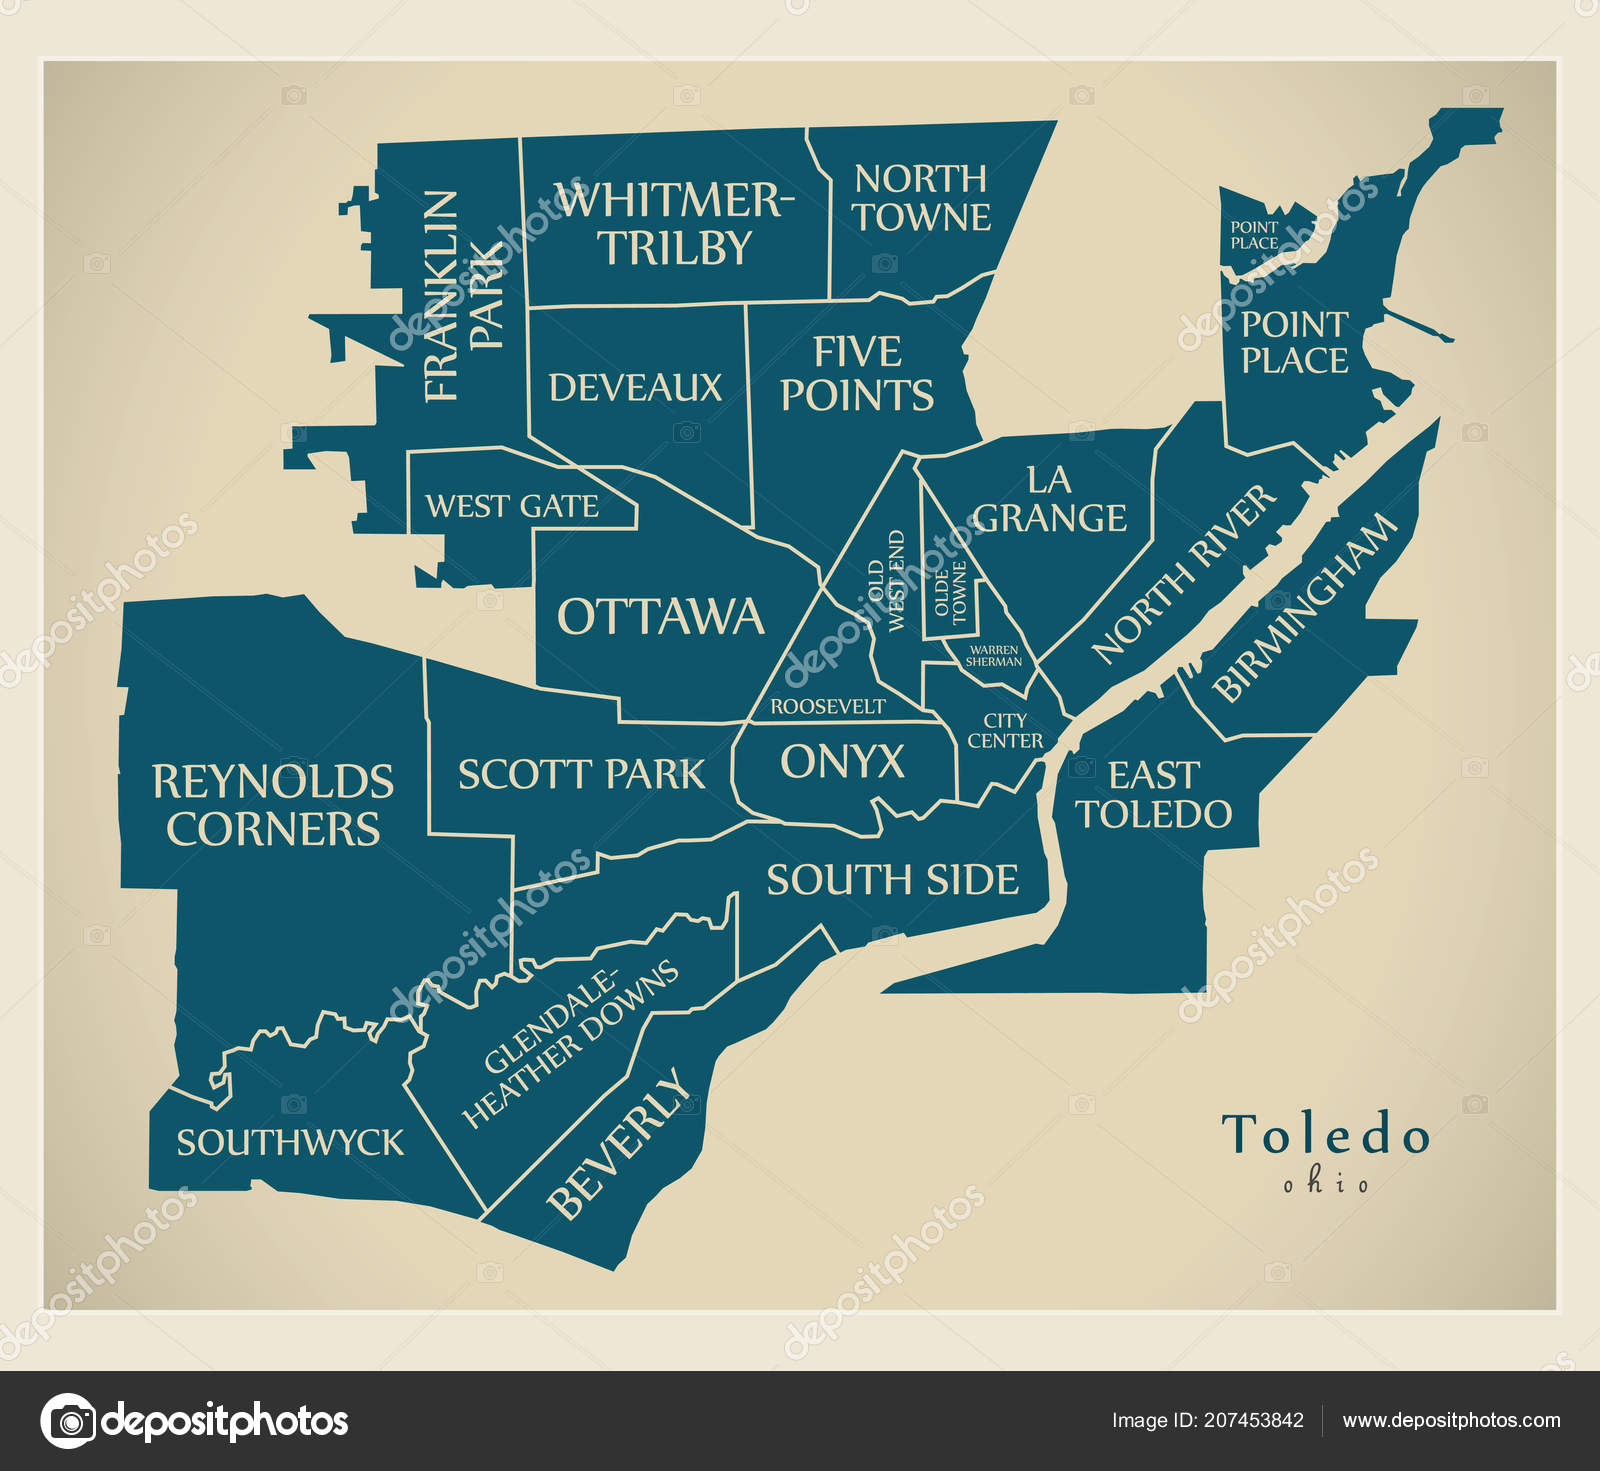 Modern City Map Toledo Ohio city of the USA with neighborhoods